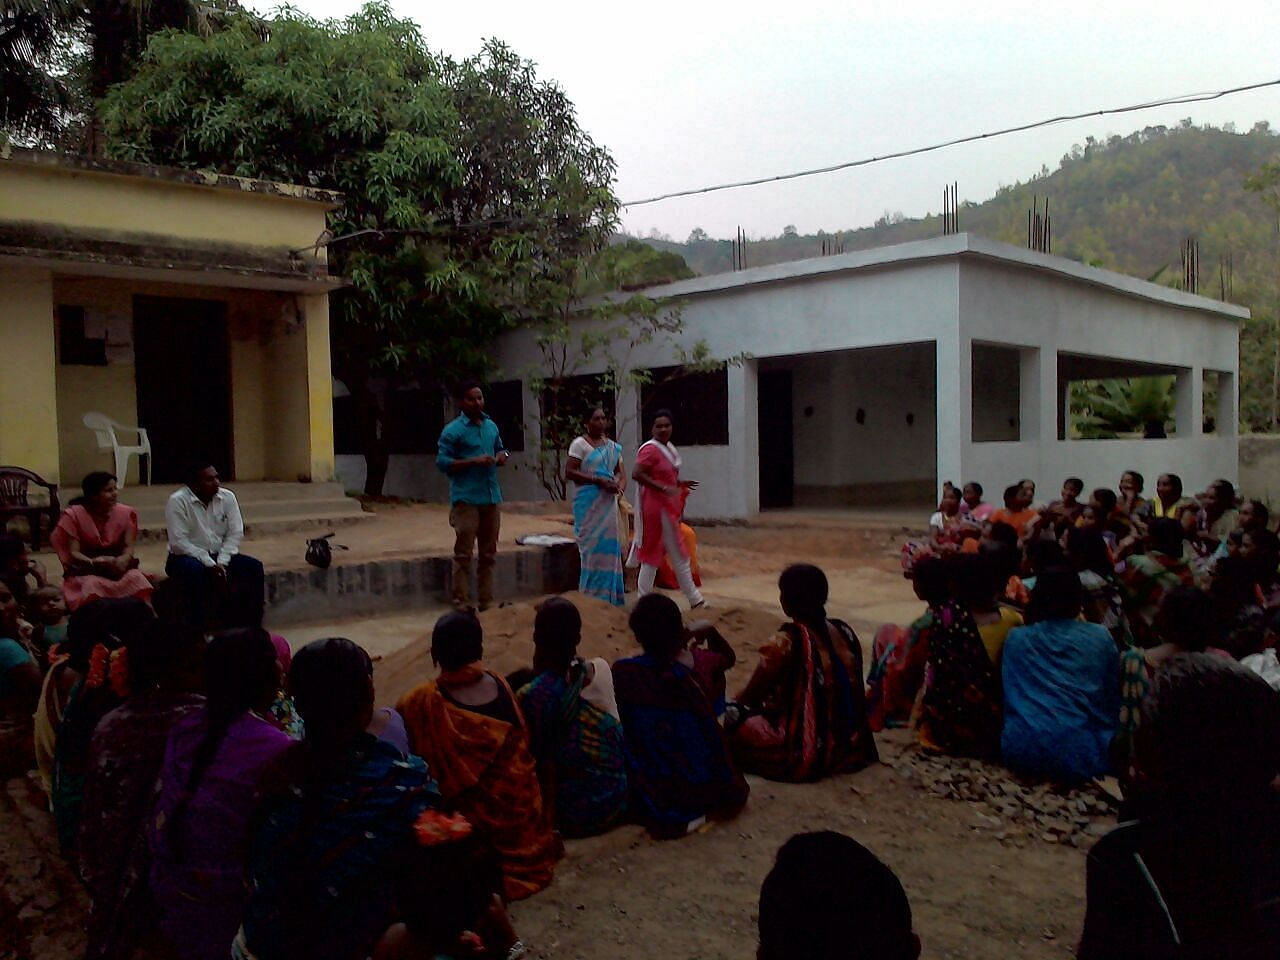 An evening meeting with villagers as most people work during the day